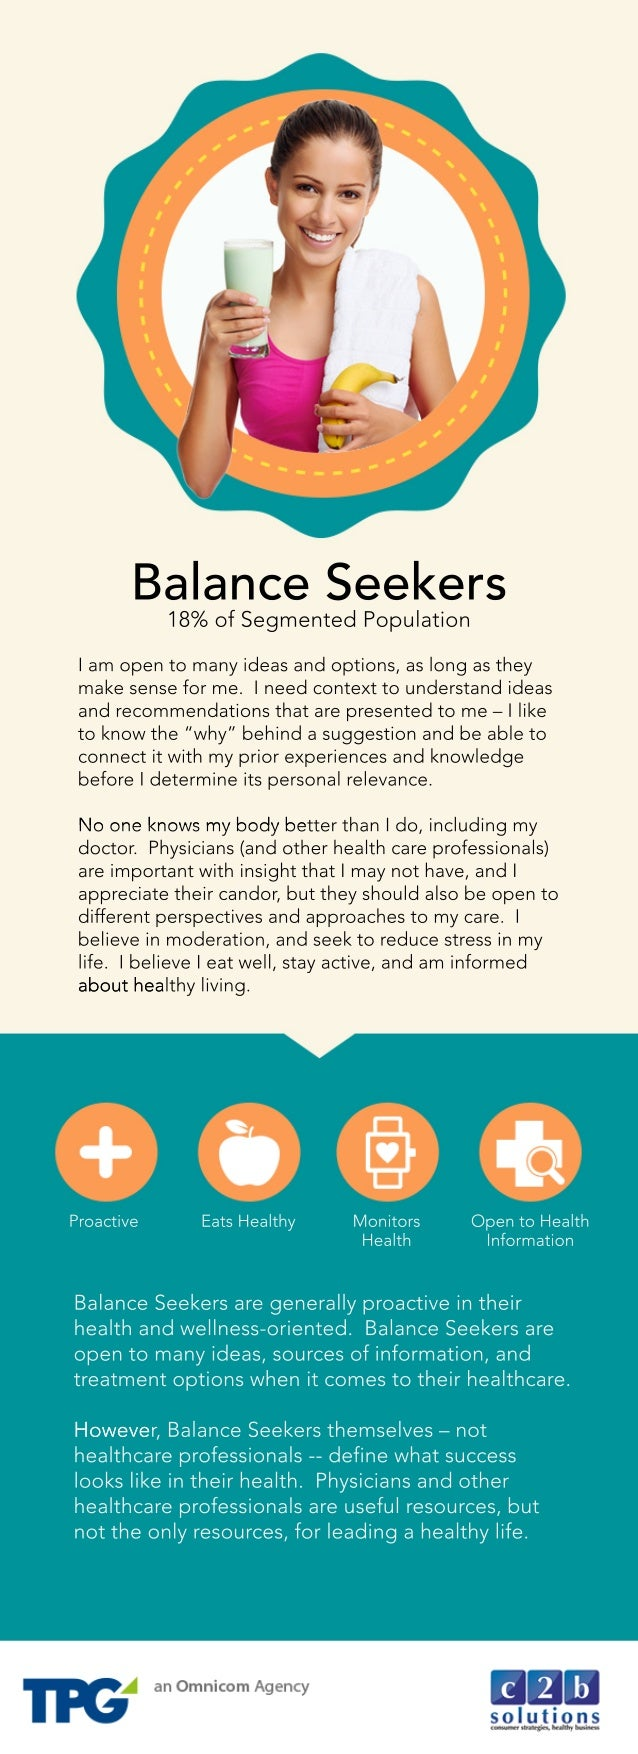 Balance Seekers Profile: Psychographic Segmentation and the Health Care Consumer